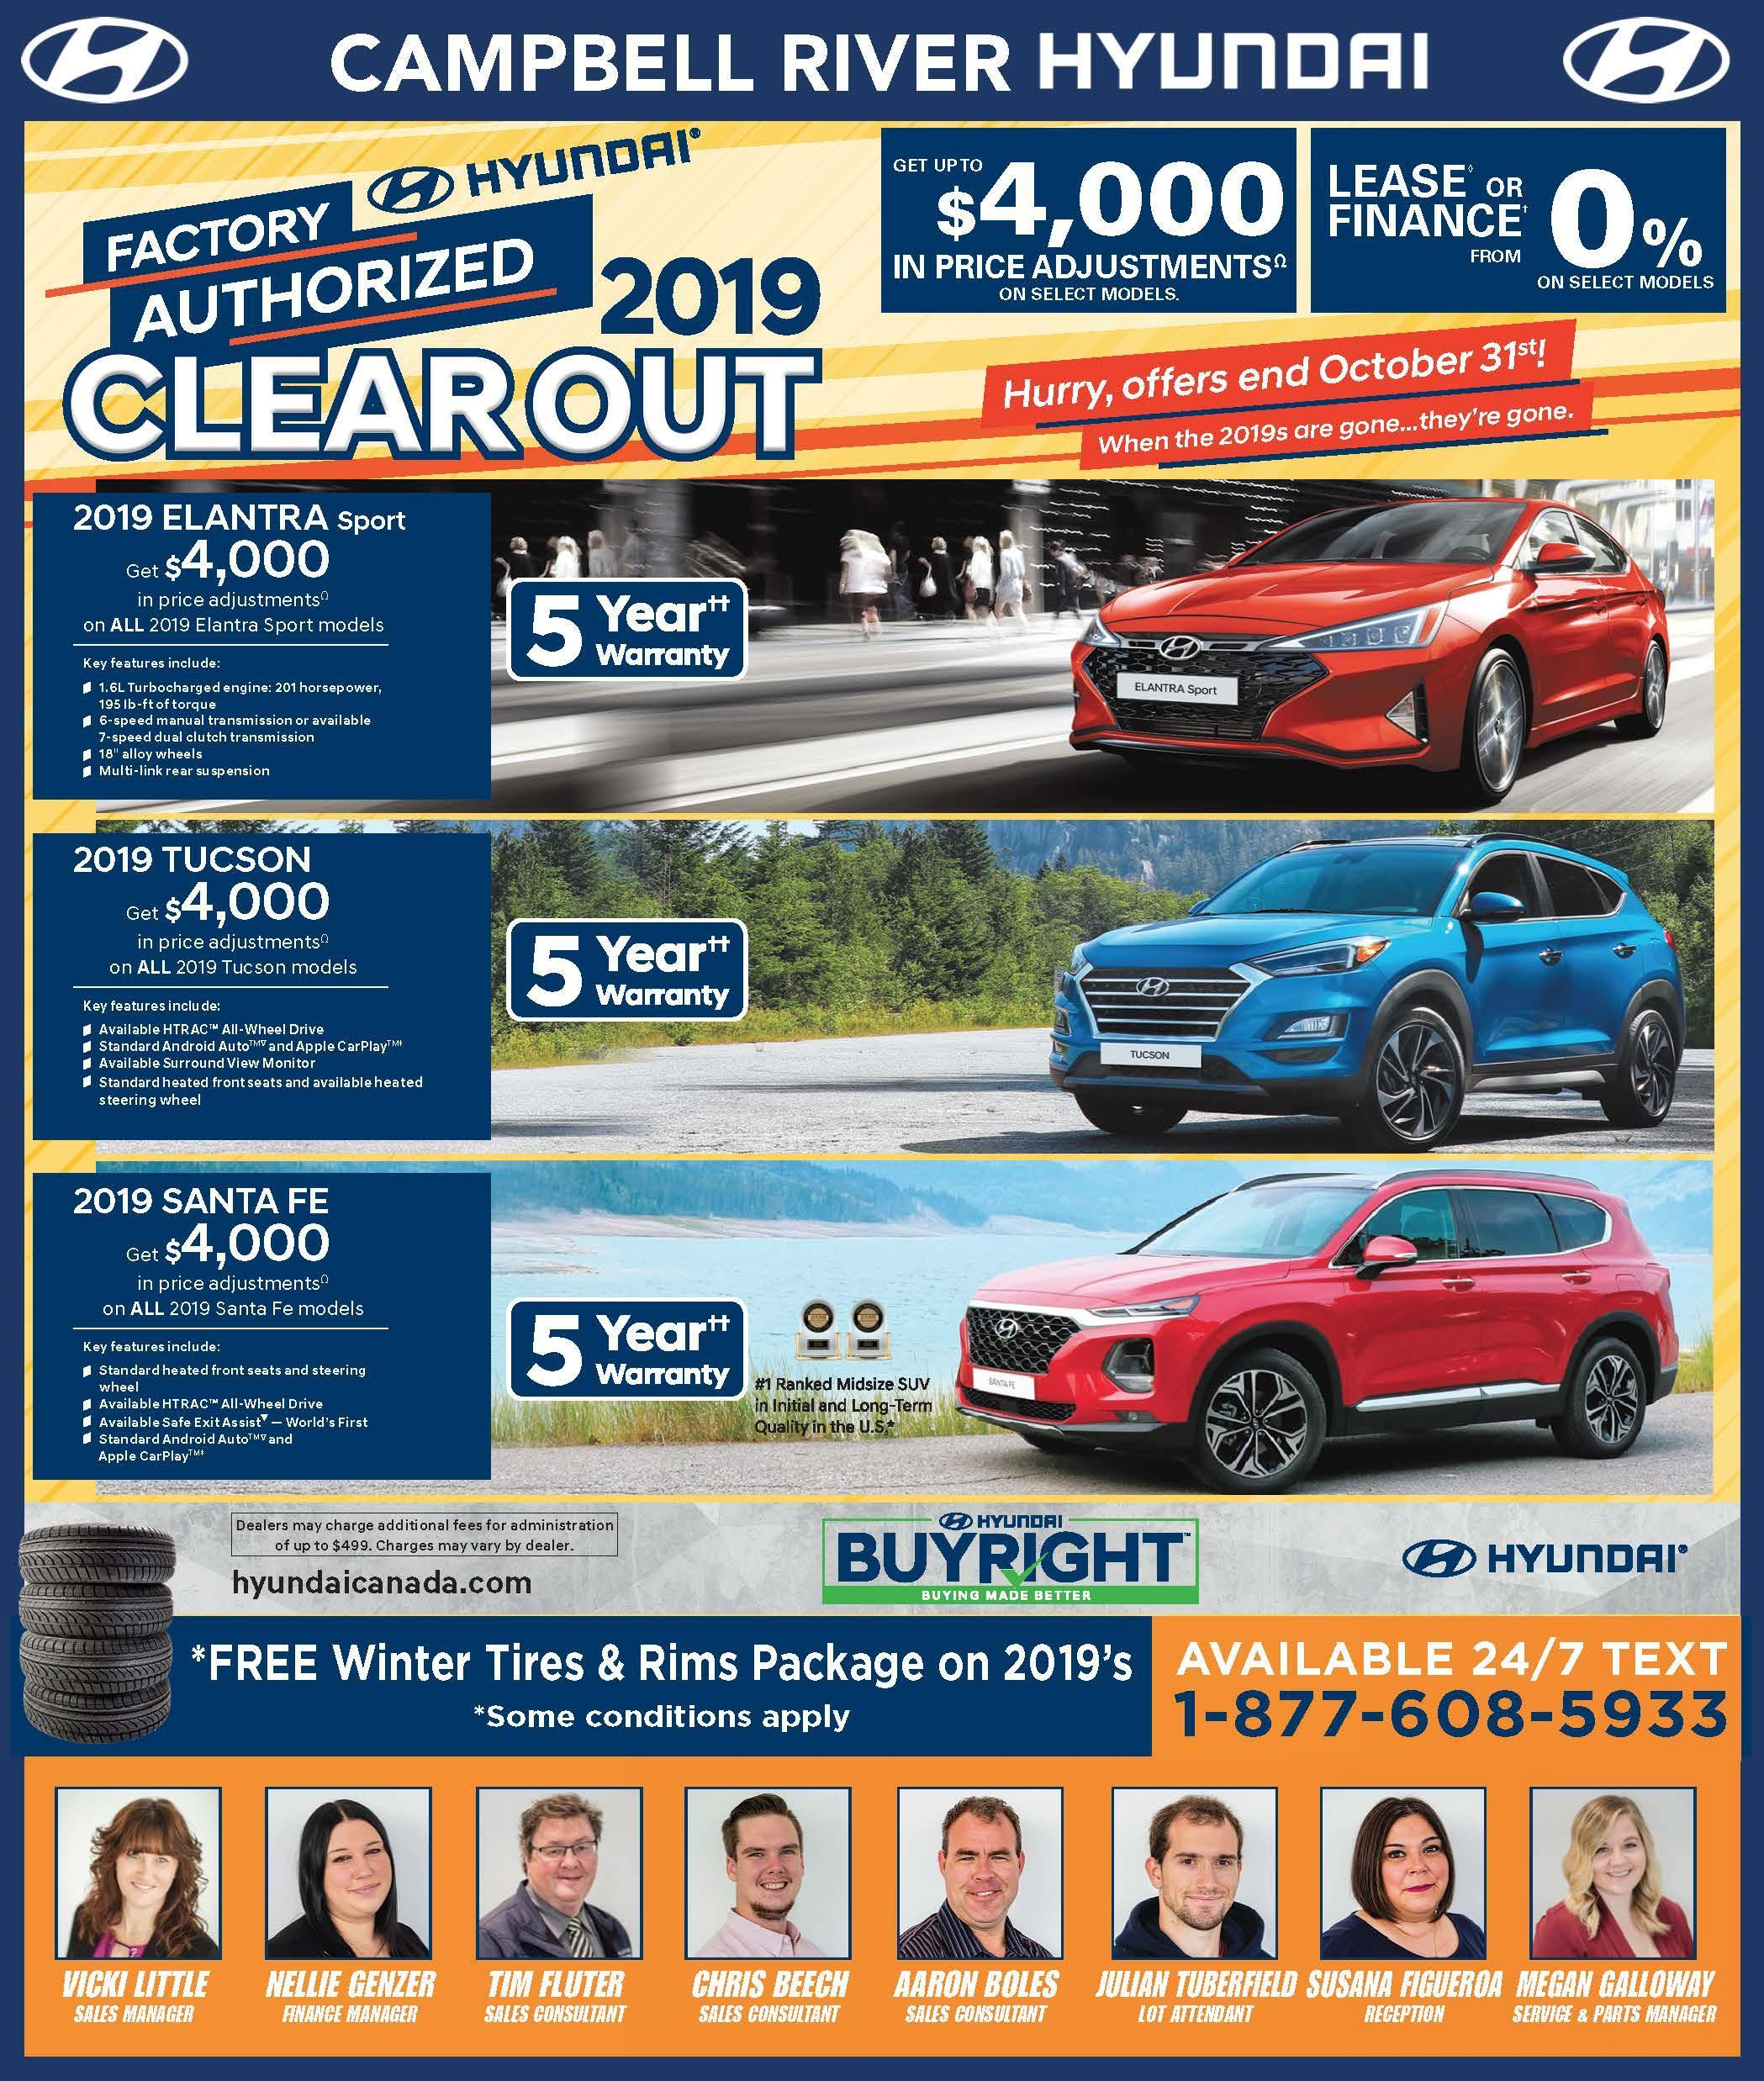 October 2019 Month Offers CRH